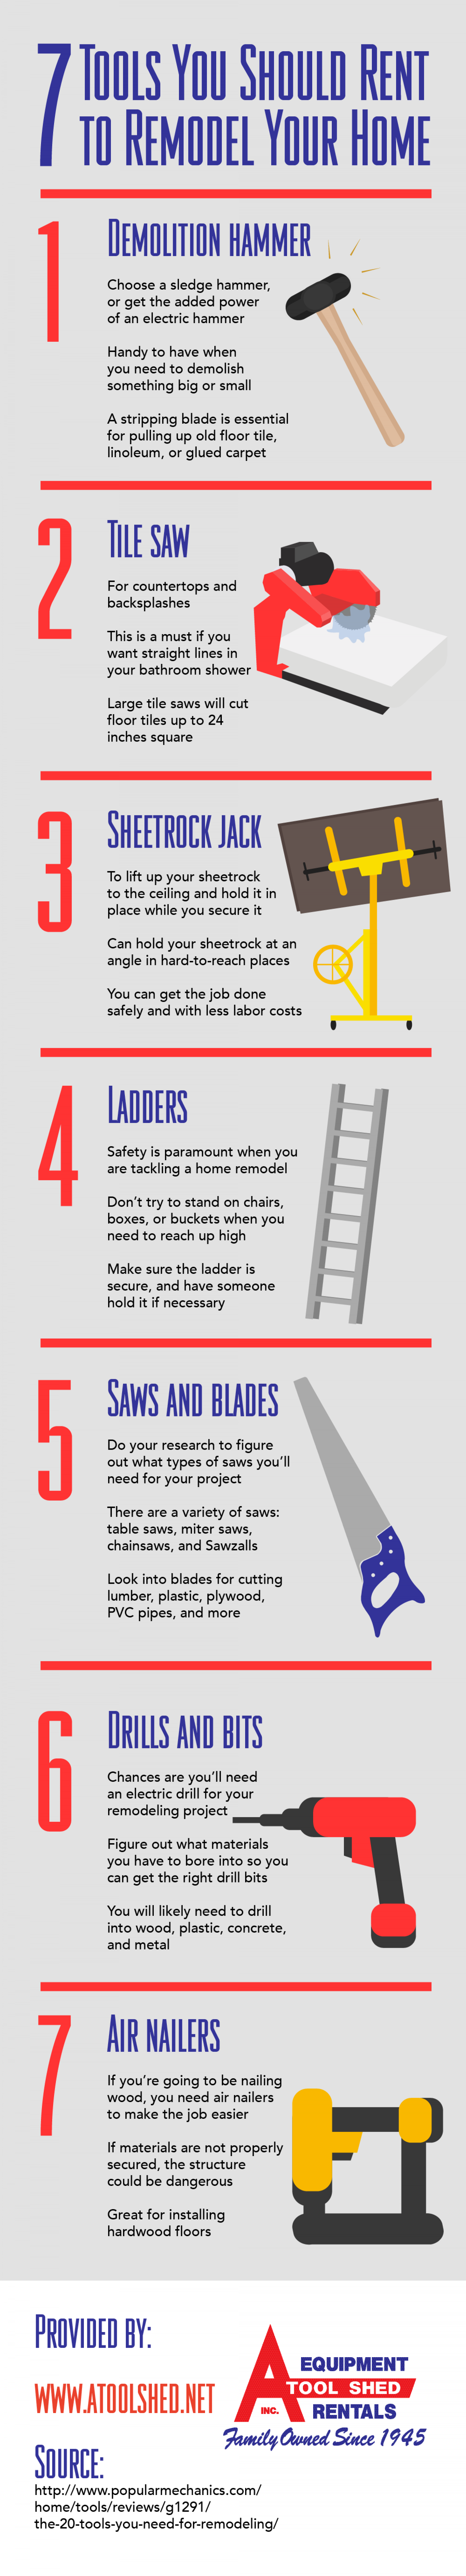 7 Tools You Should Rent to Remodel Your Home Infographic